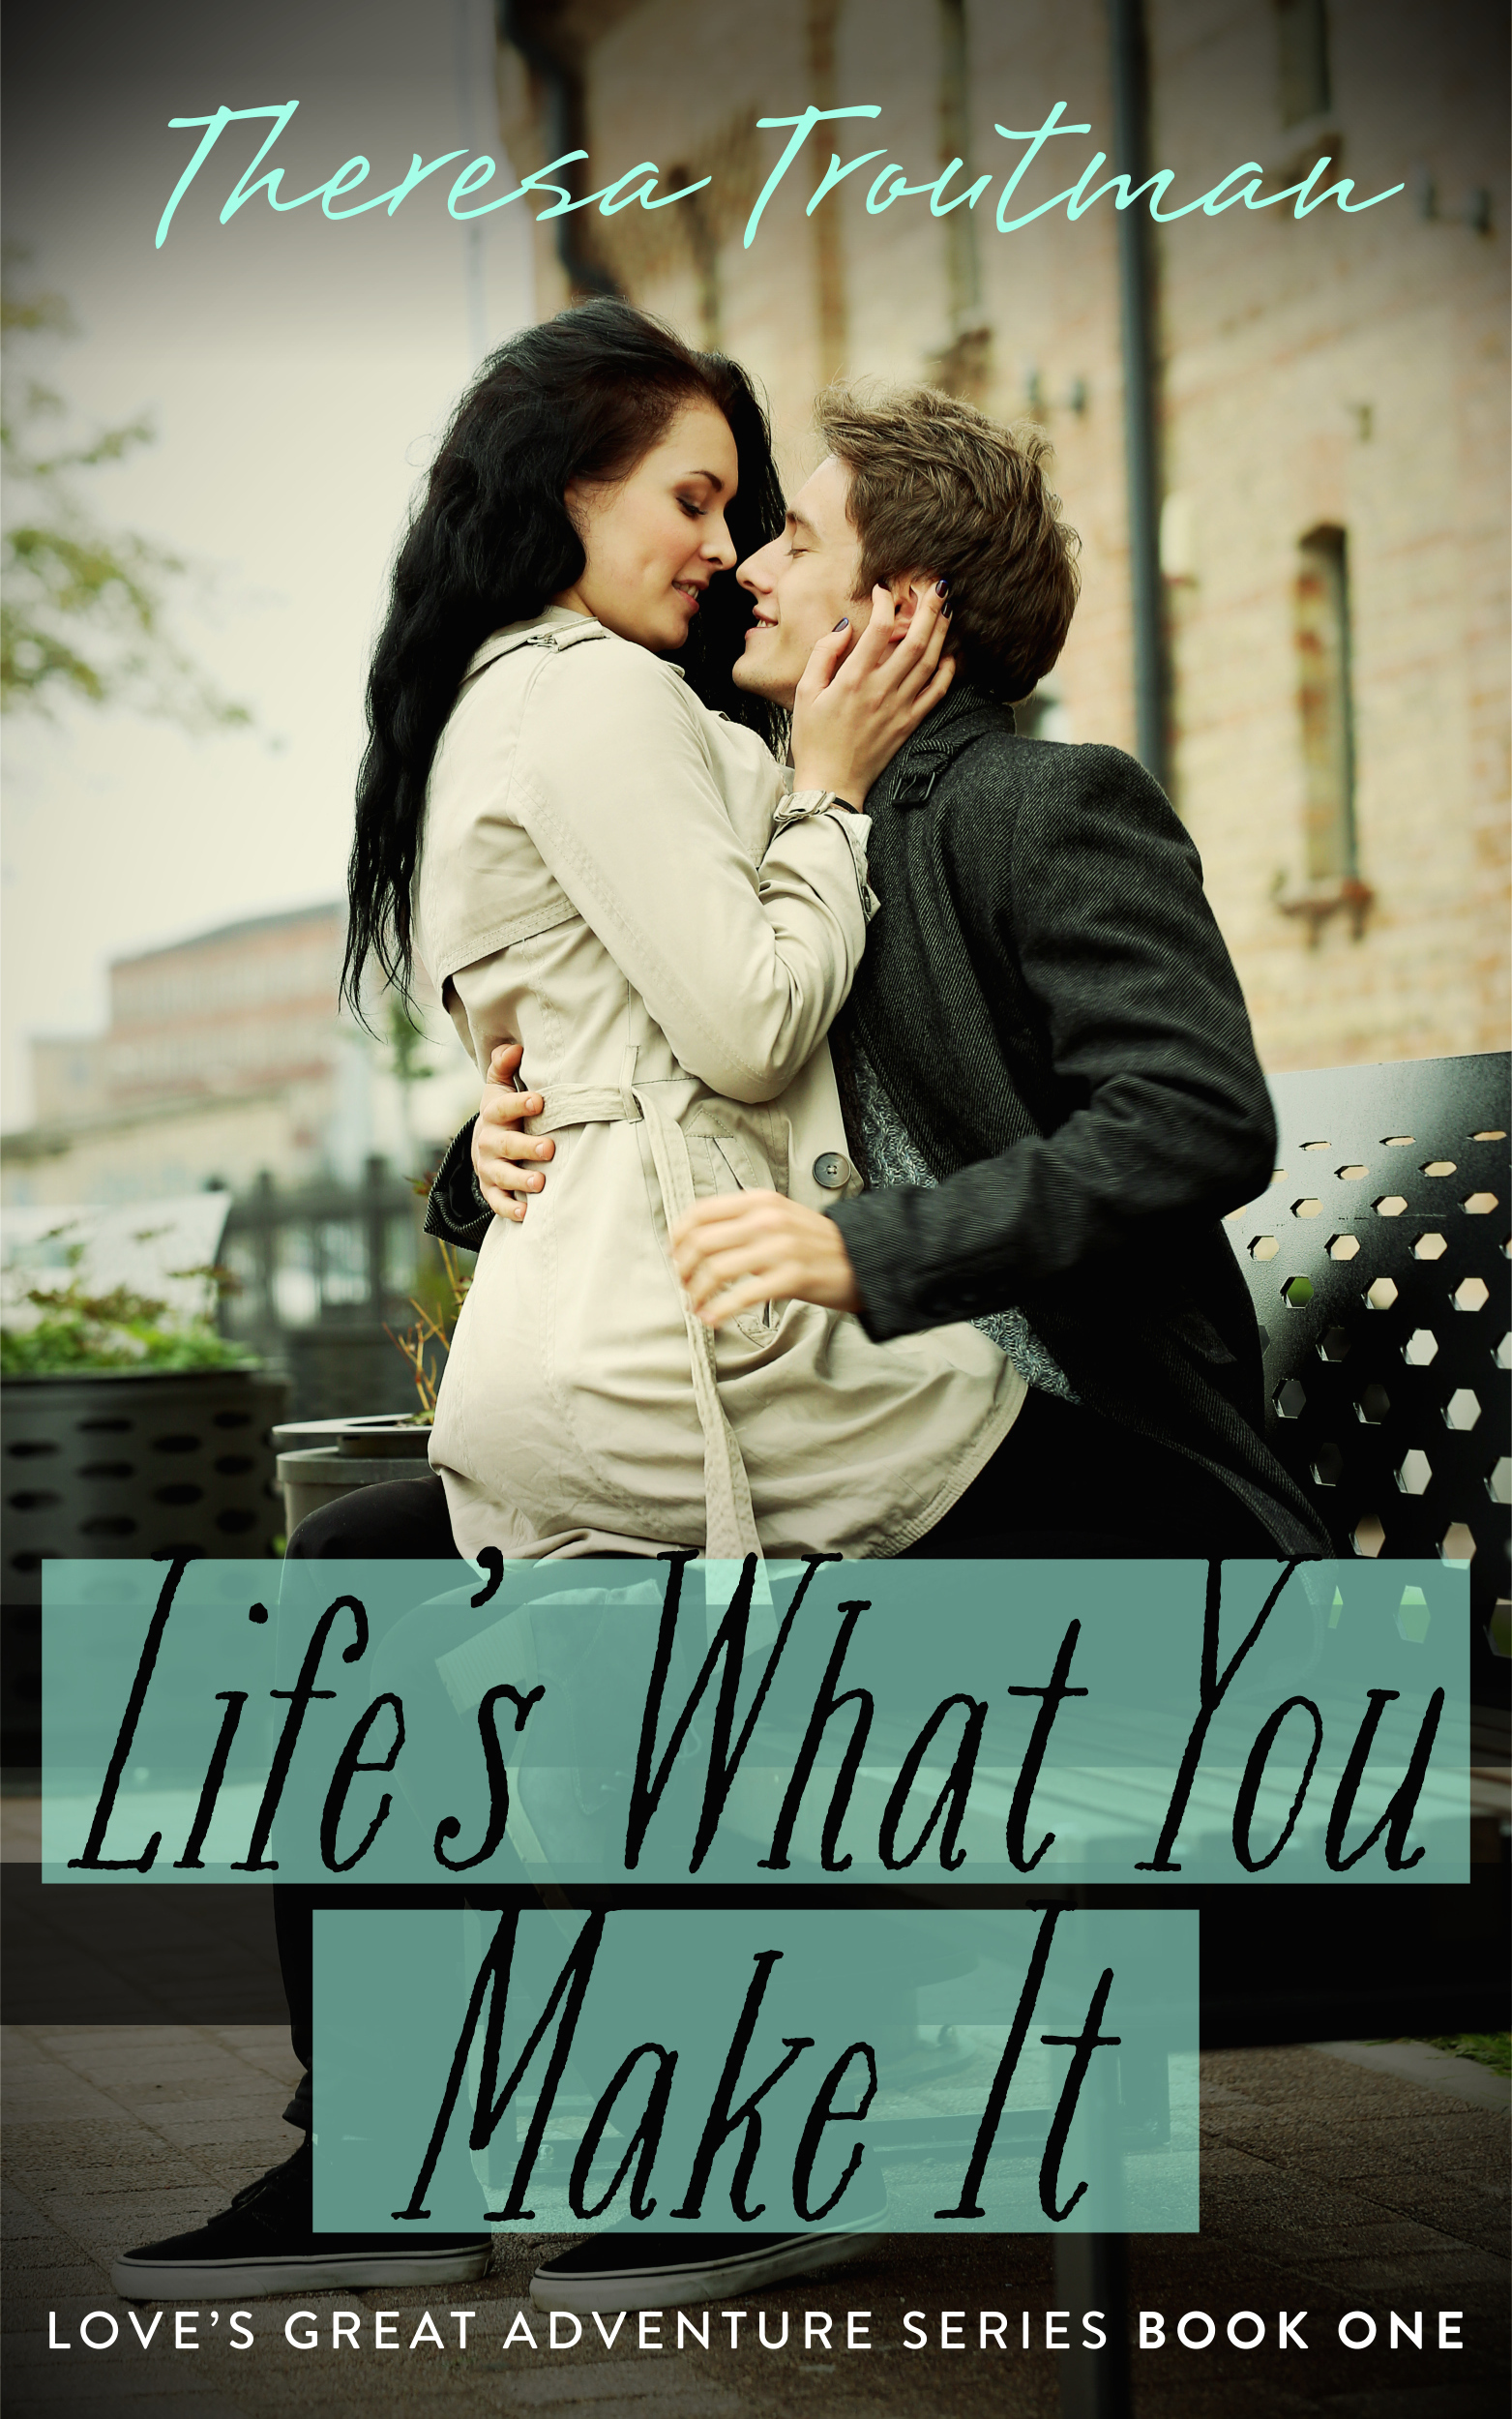 Lifes What You Make It: The Loves Great Adventure Series Book 1  by  Theresa Troutman